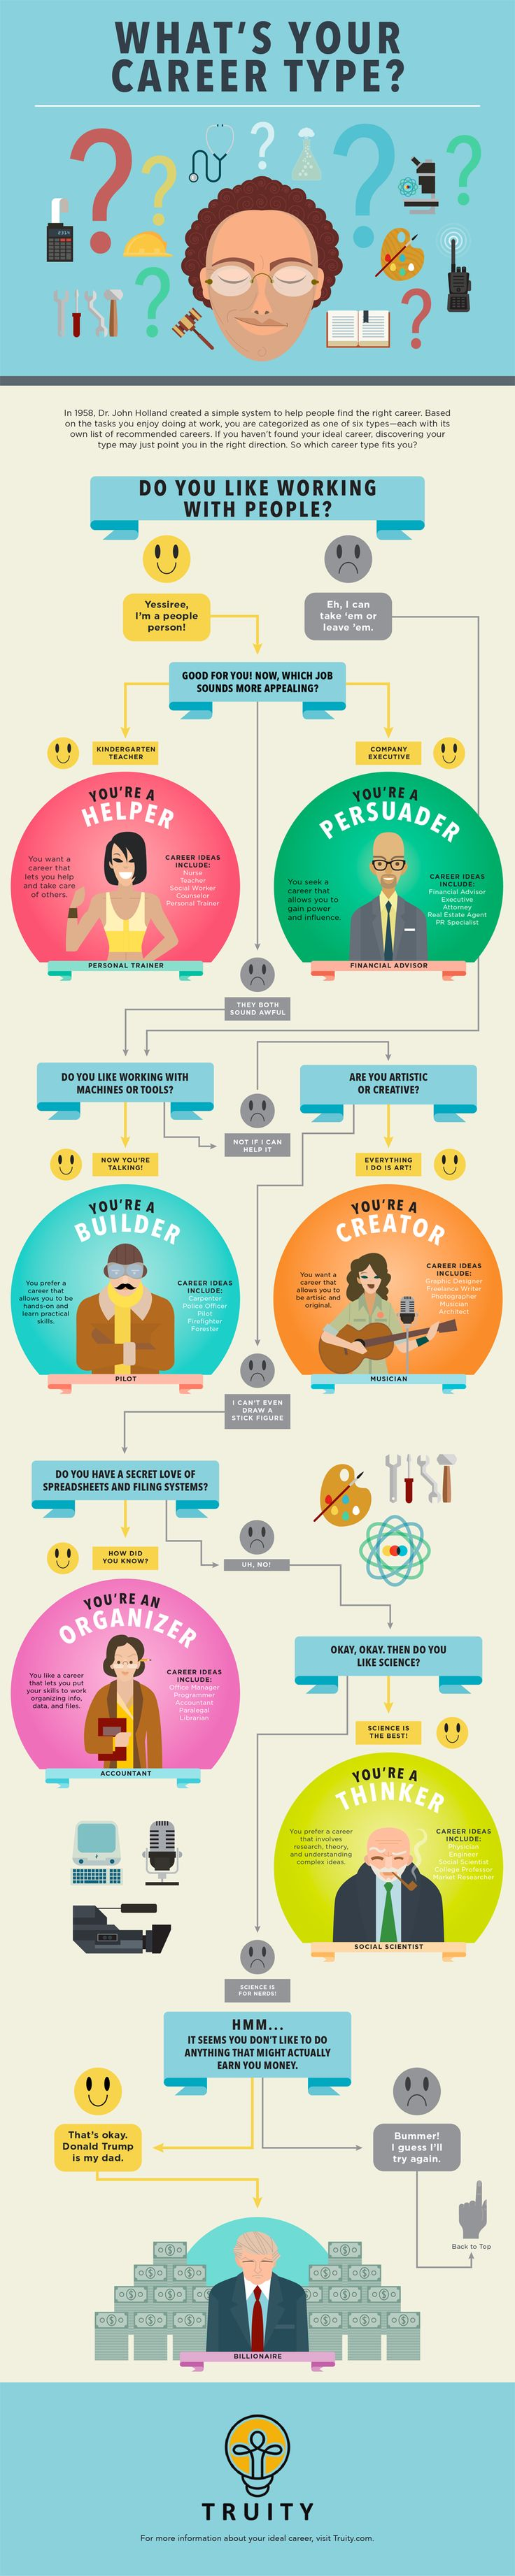 What's Your Career Type? #infographic #career